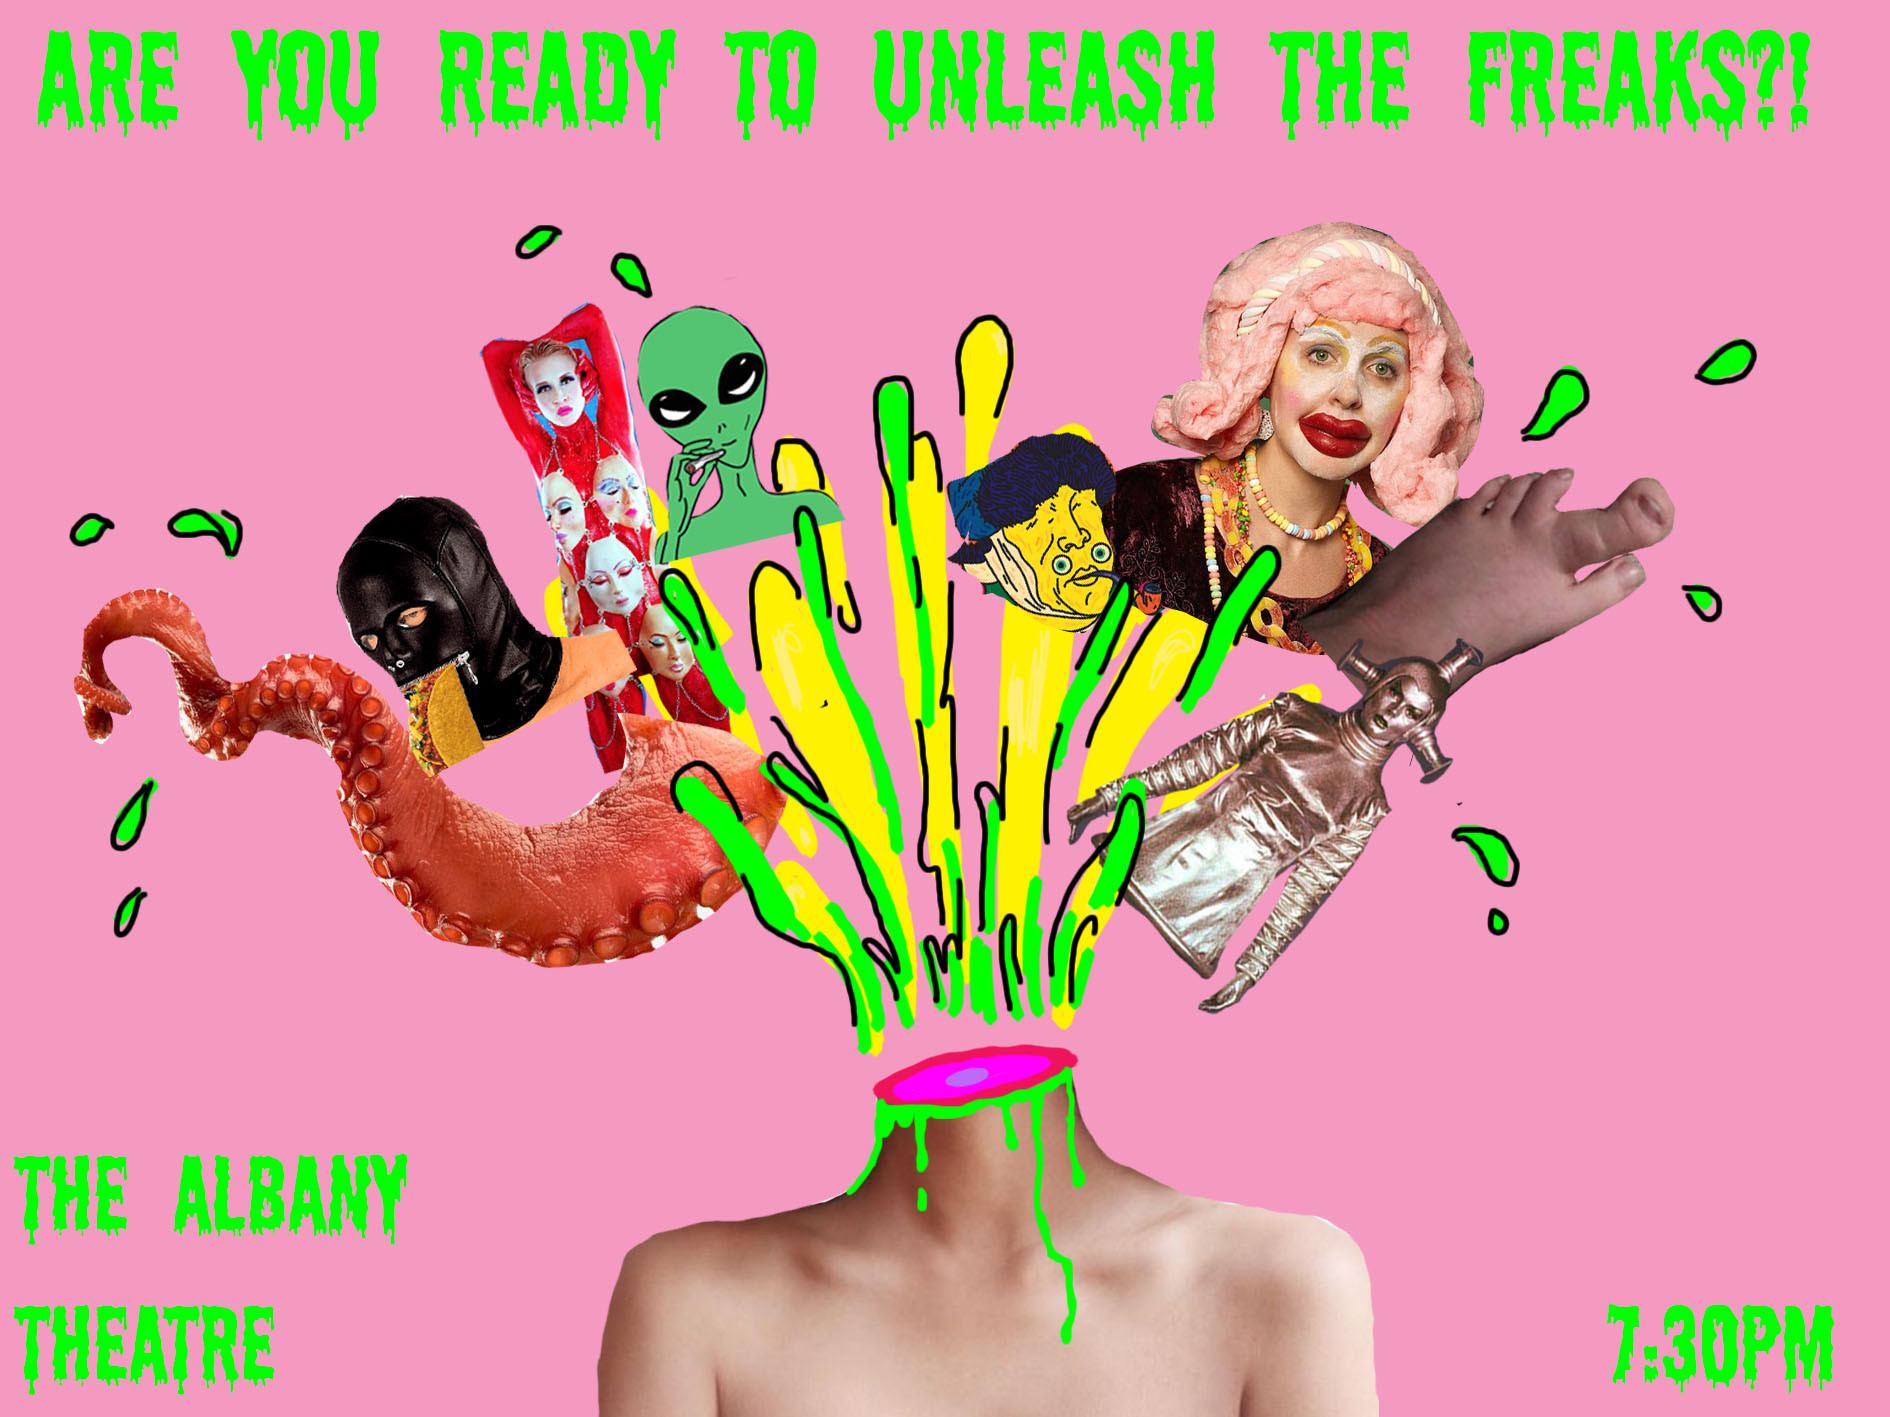 frisky freaky second poster FINAL .jpg